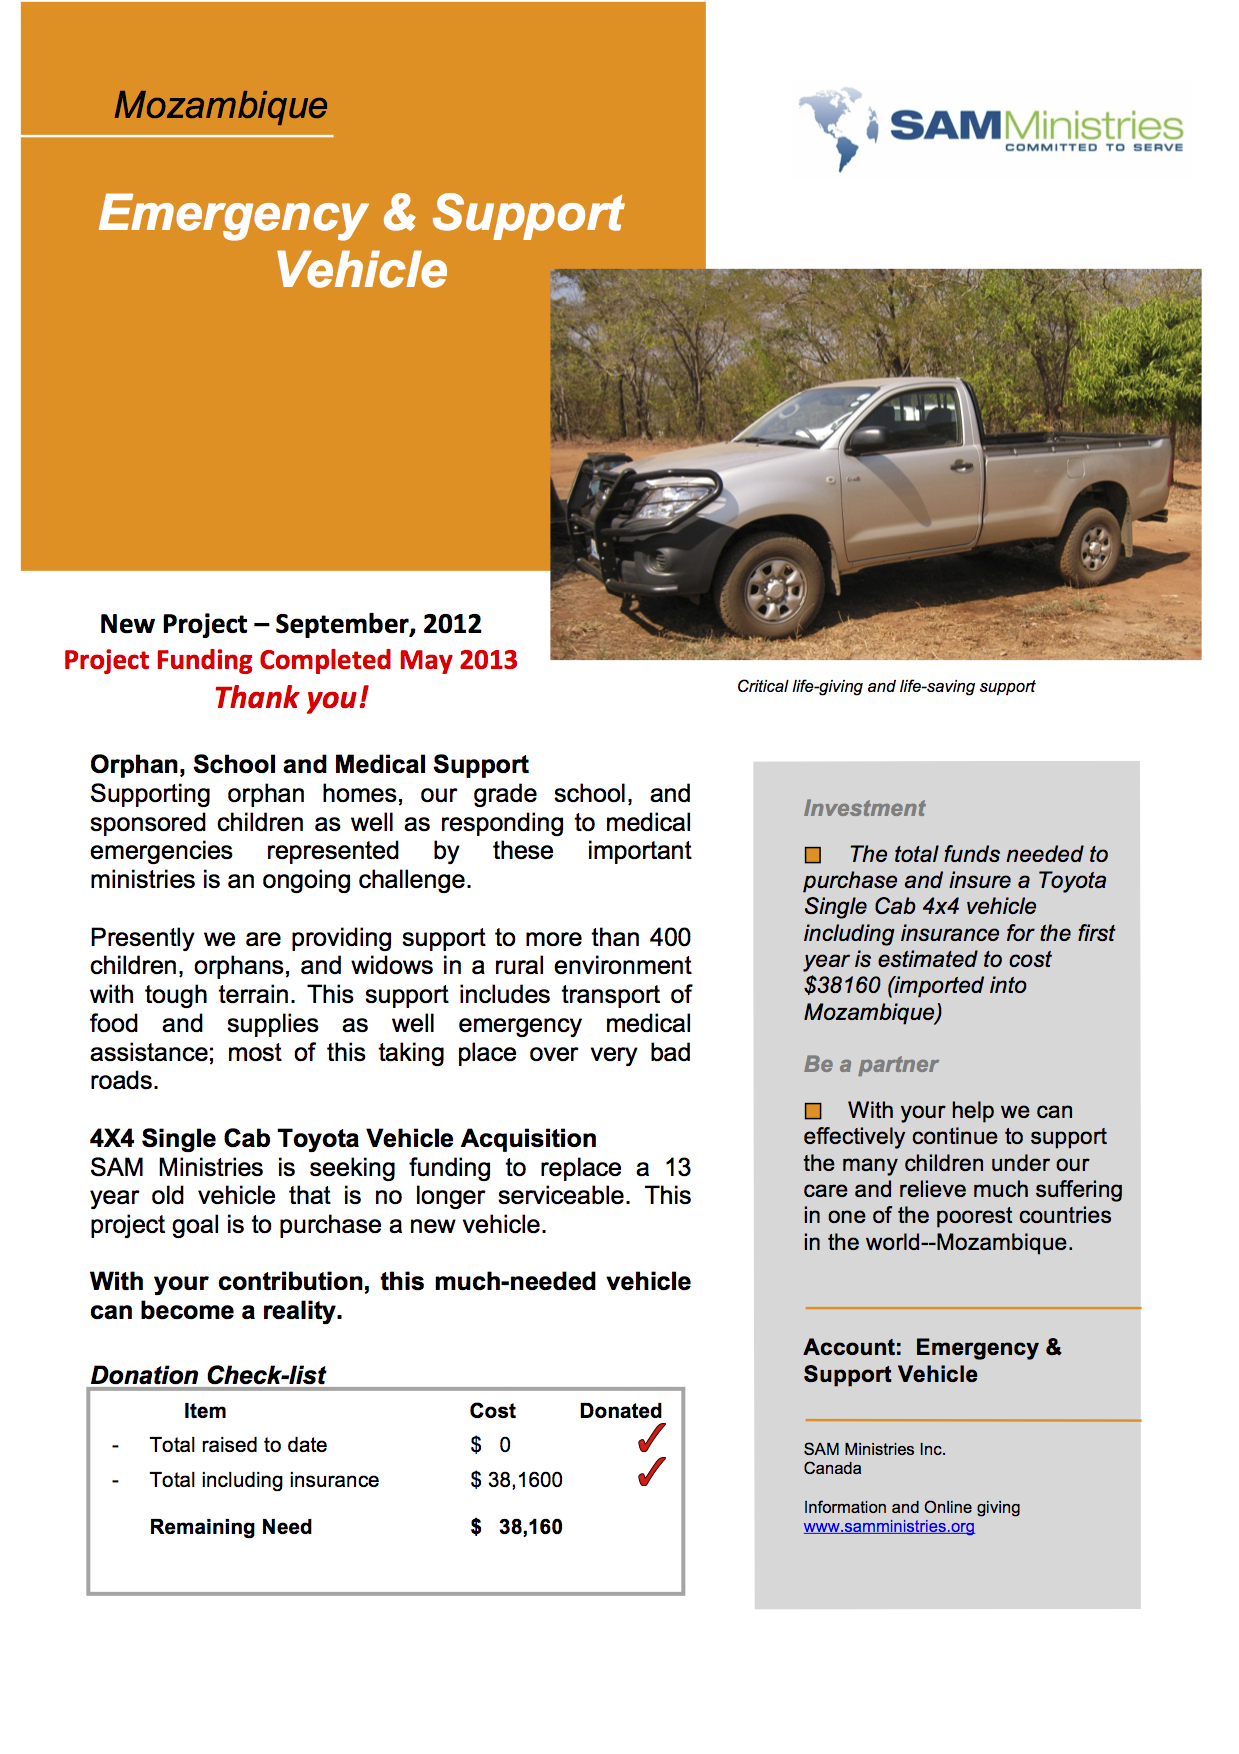 Emergency & Support Vehicle Project Executive Summary-1